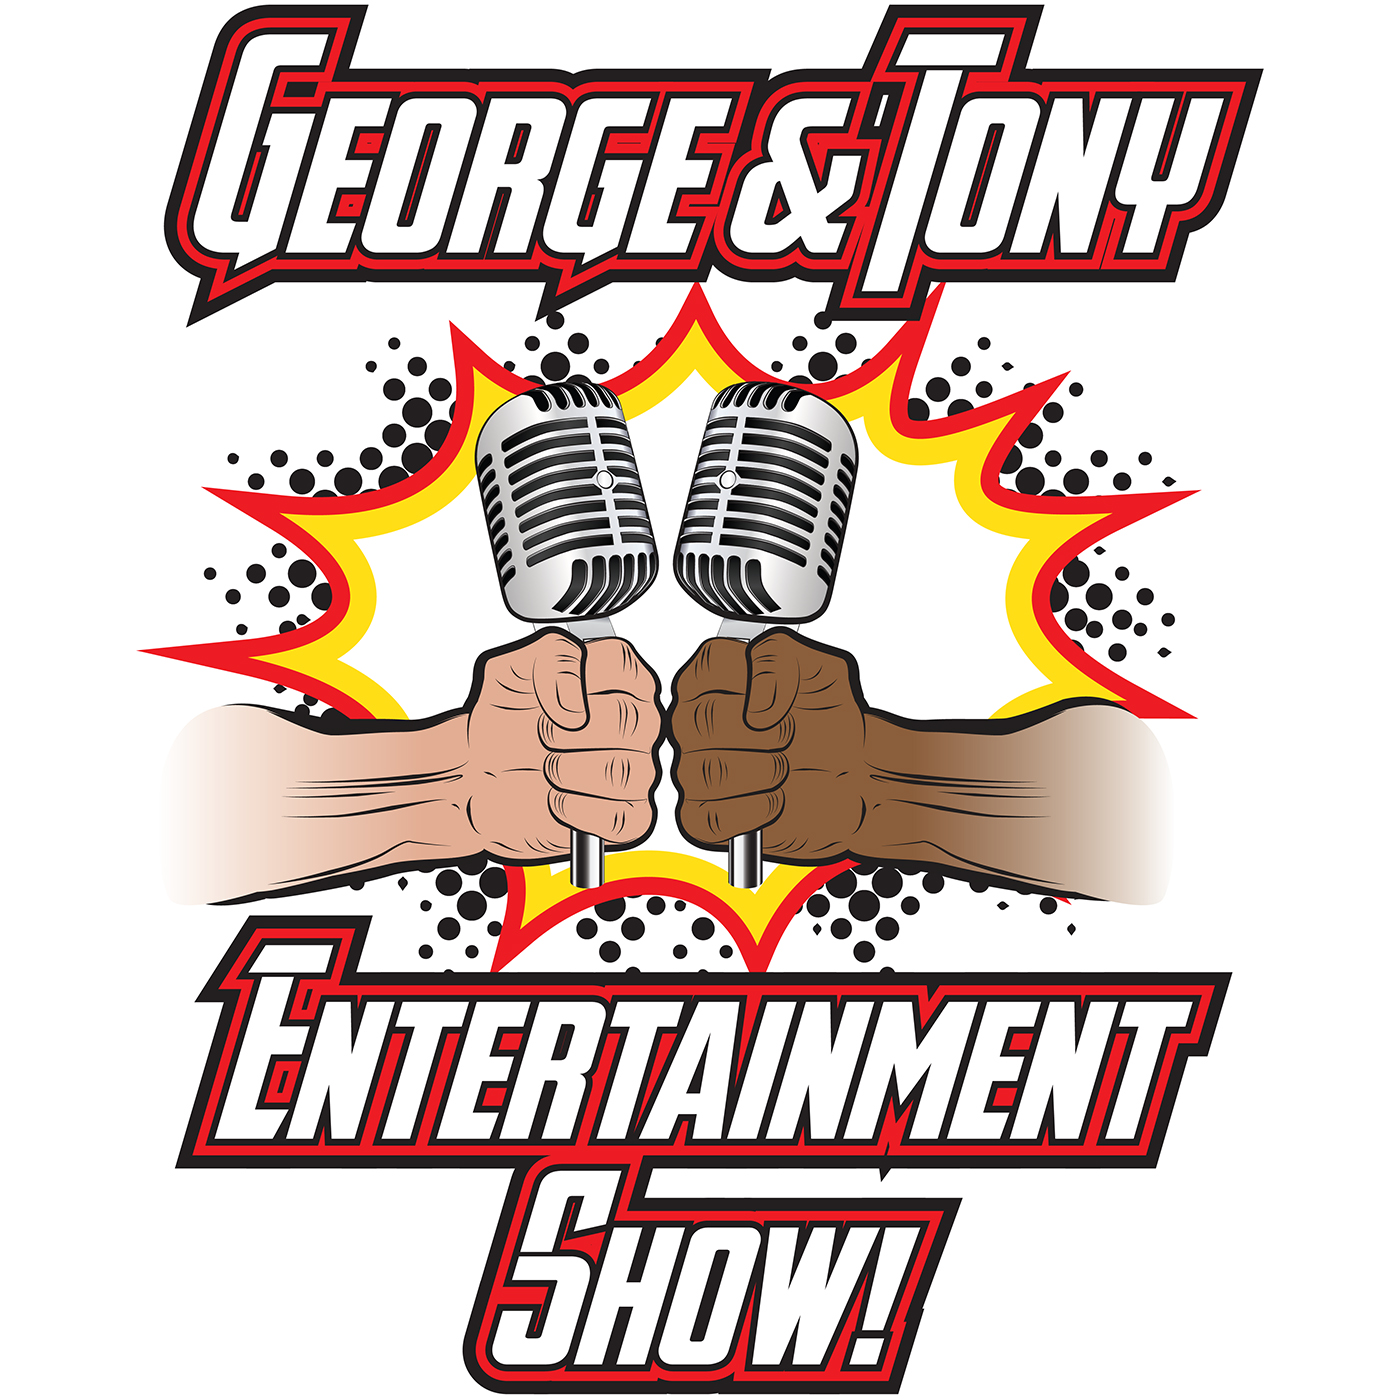 George and Tony Entertainment Show #155